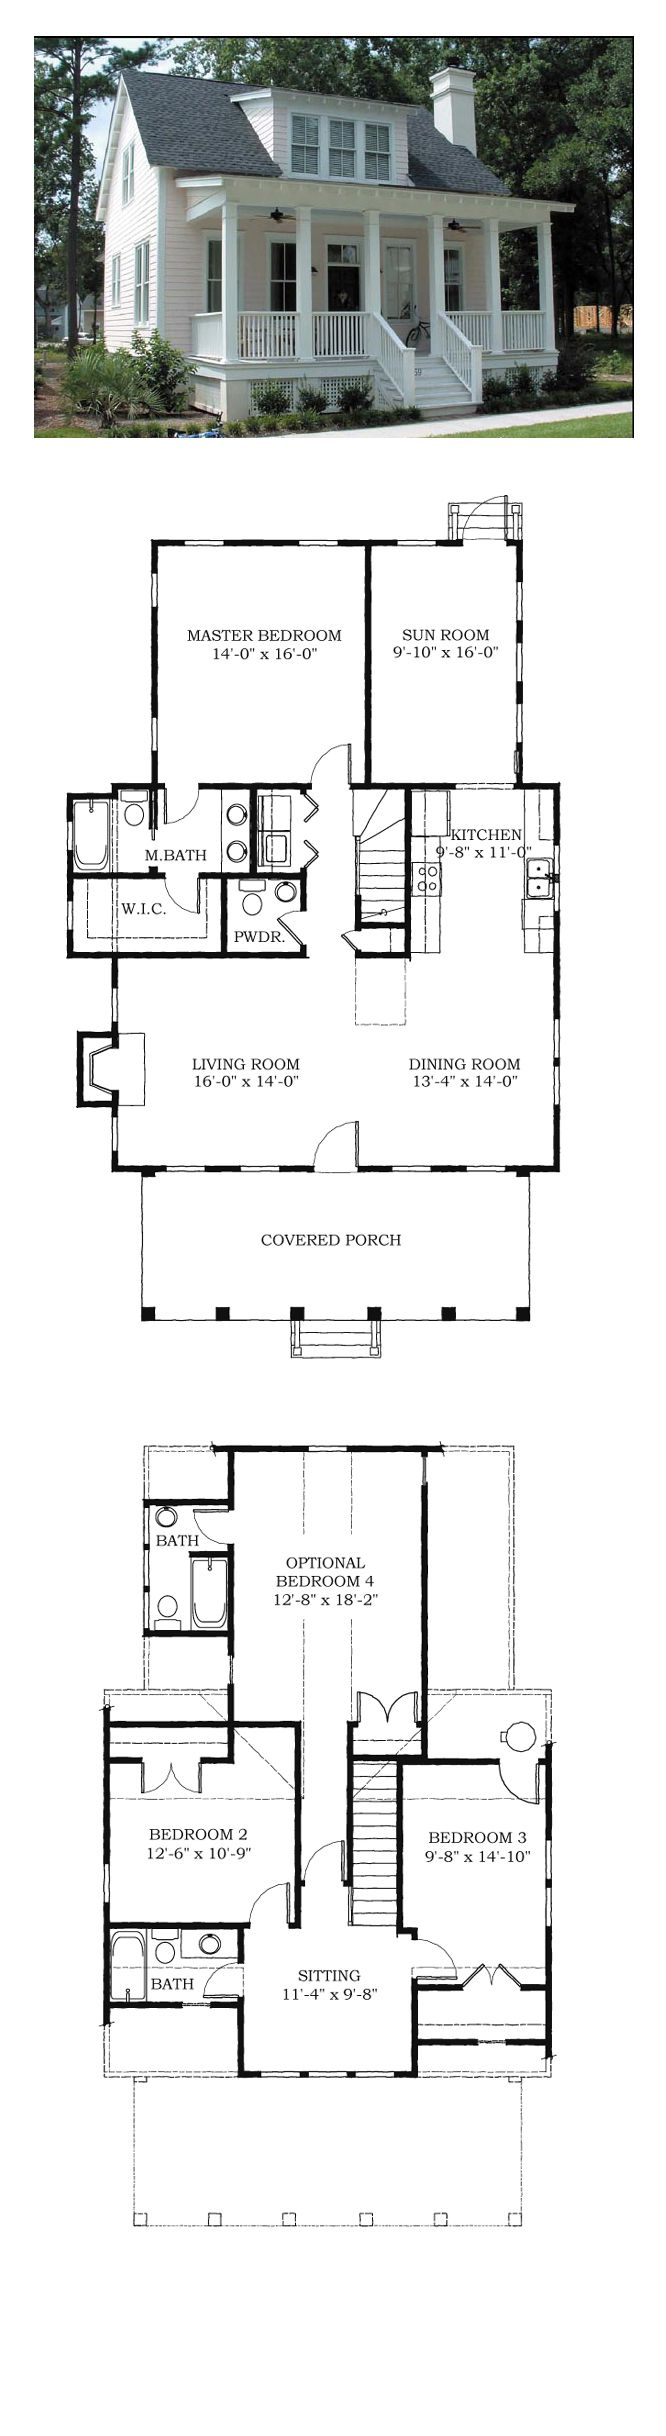 Small House Blueprints modern house design mhd 2012004 pinoy eplans modern house designs small house design and more house Bungalow Floor Plans